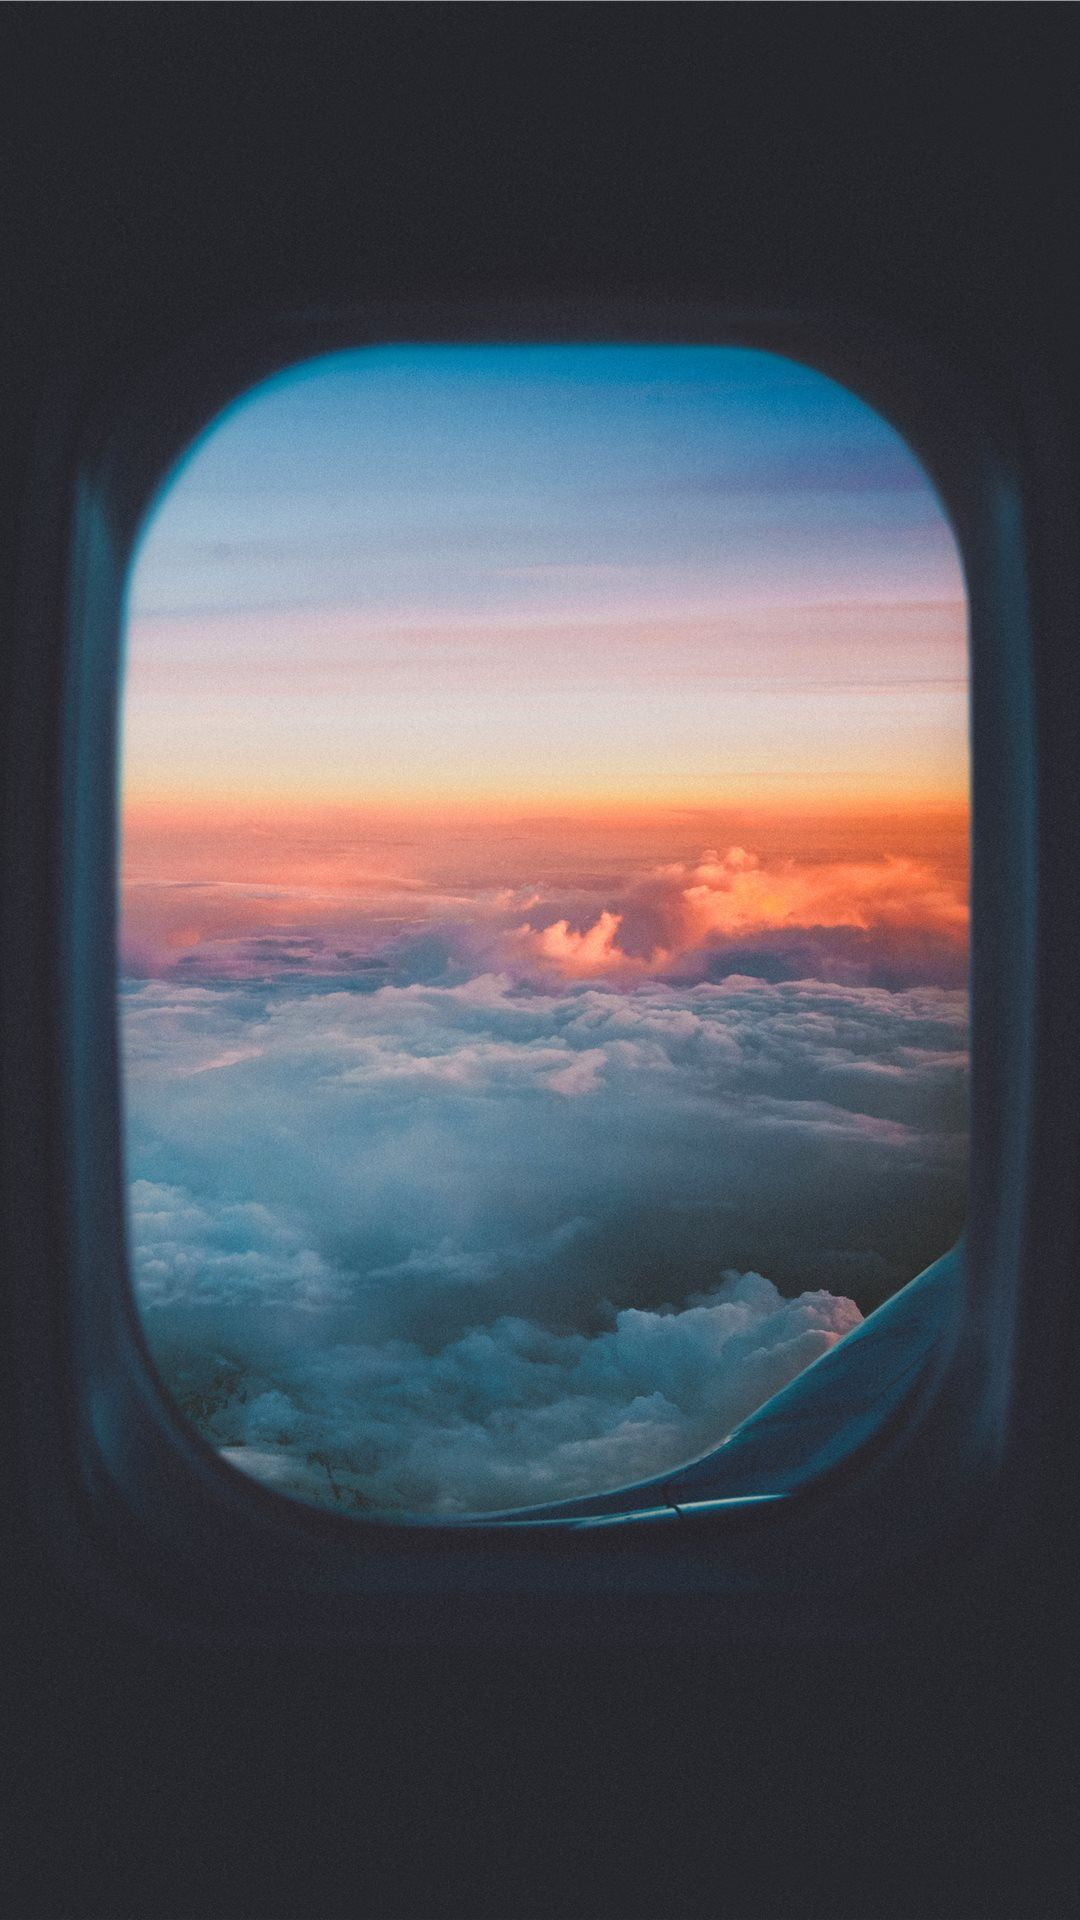 Free Download The Take Me To The Sky Wallpaper Beaty Your Iphone Cloud Sunset Lost Mom In 2020 Iphone Wallpaper Sky Ipad Lockscreen Backgrounds Phone Wallpapers